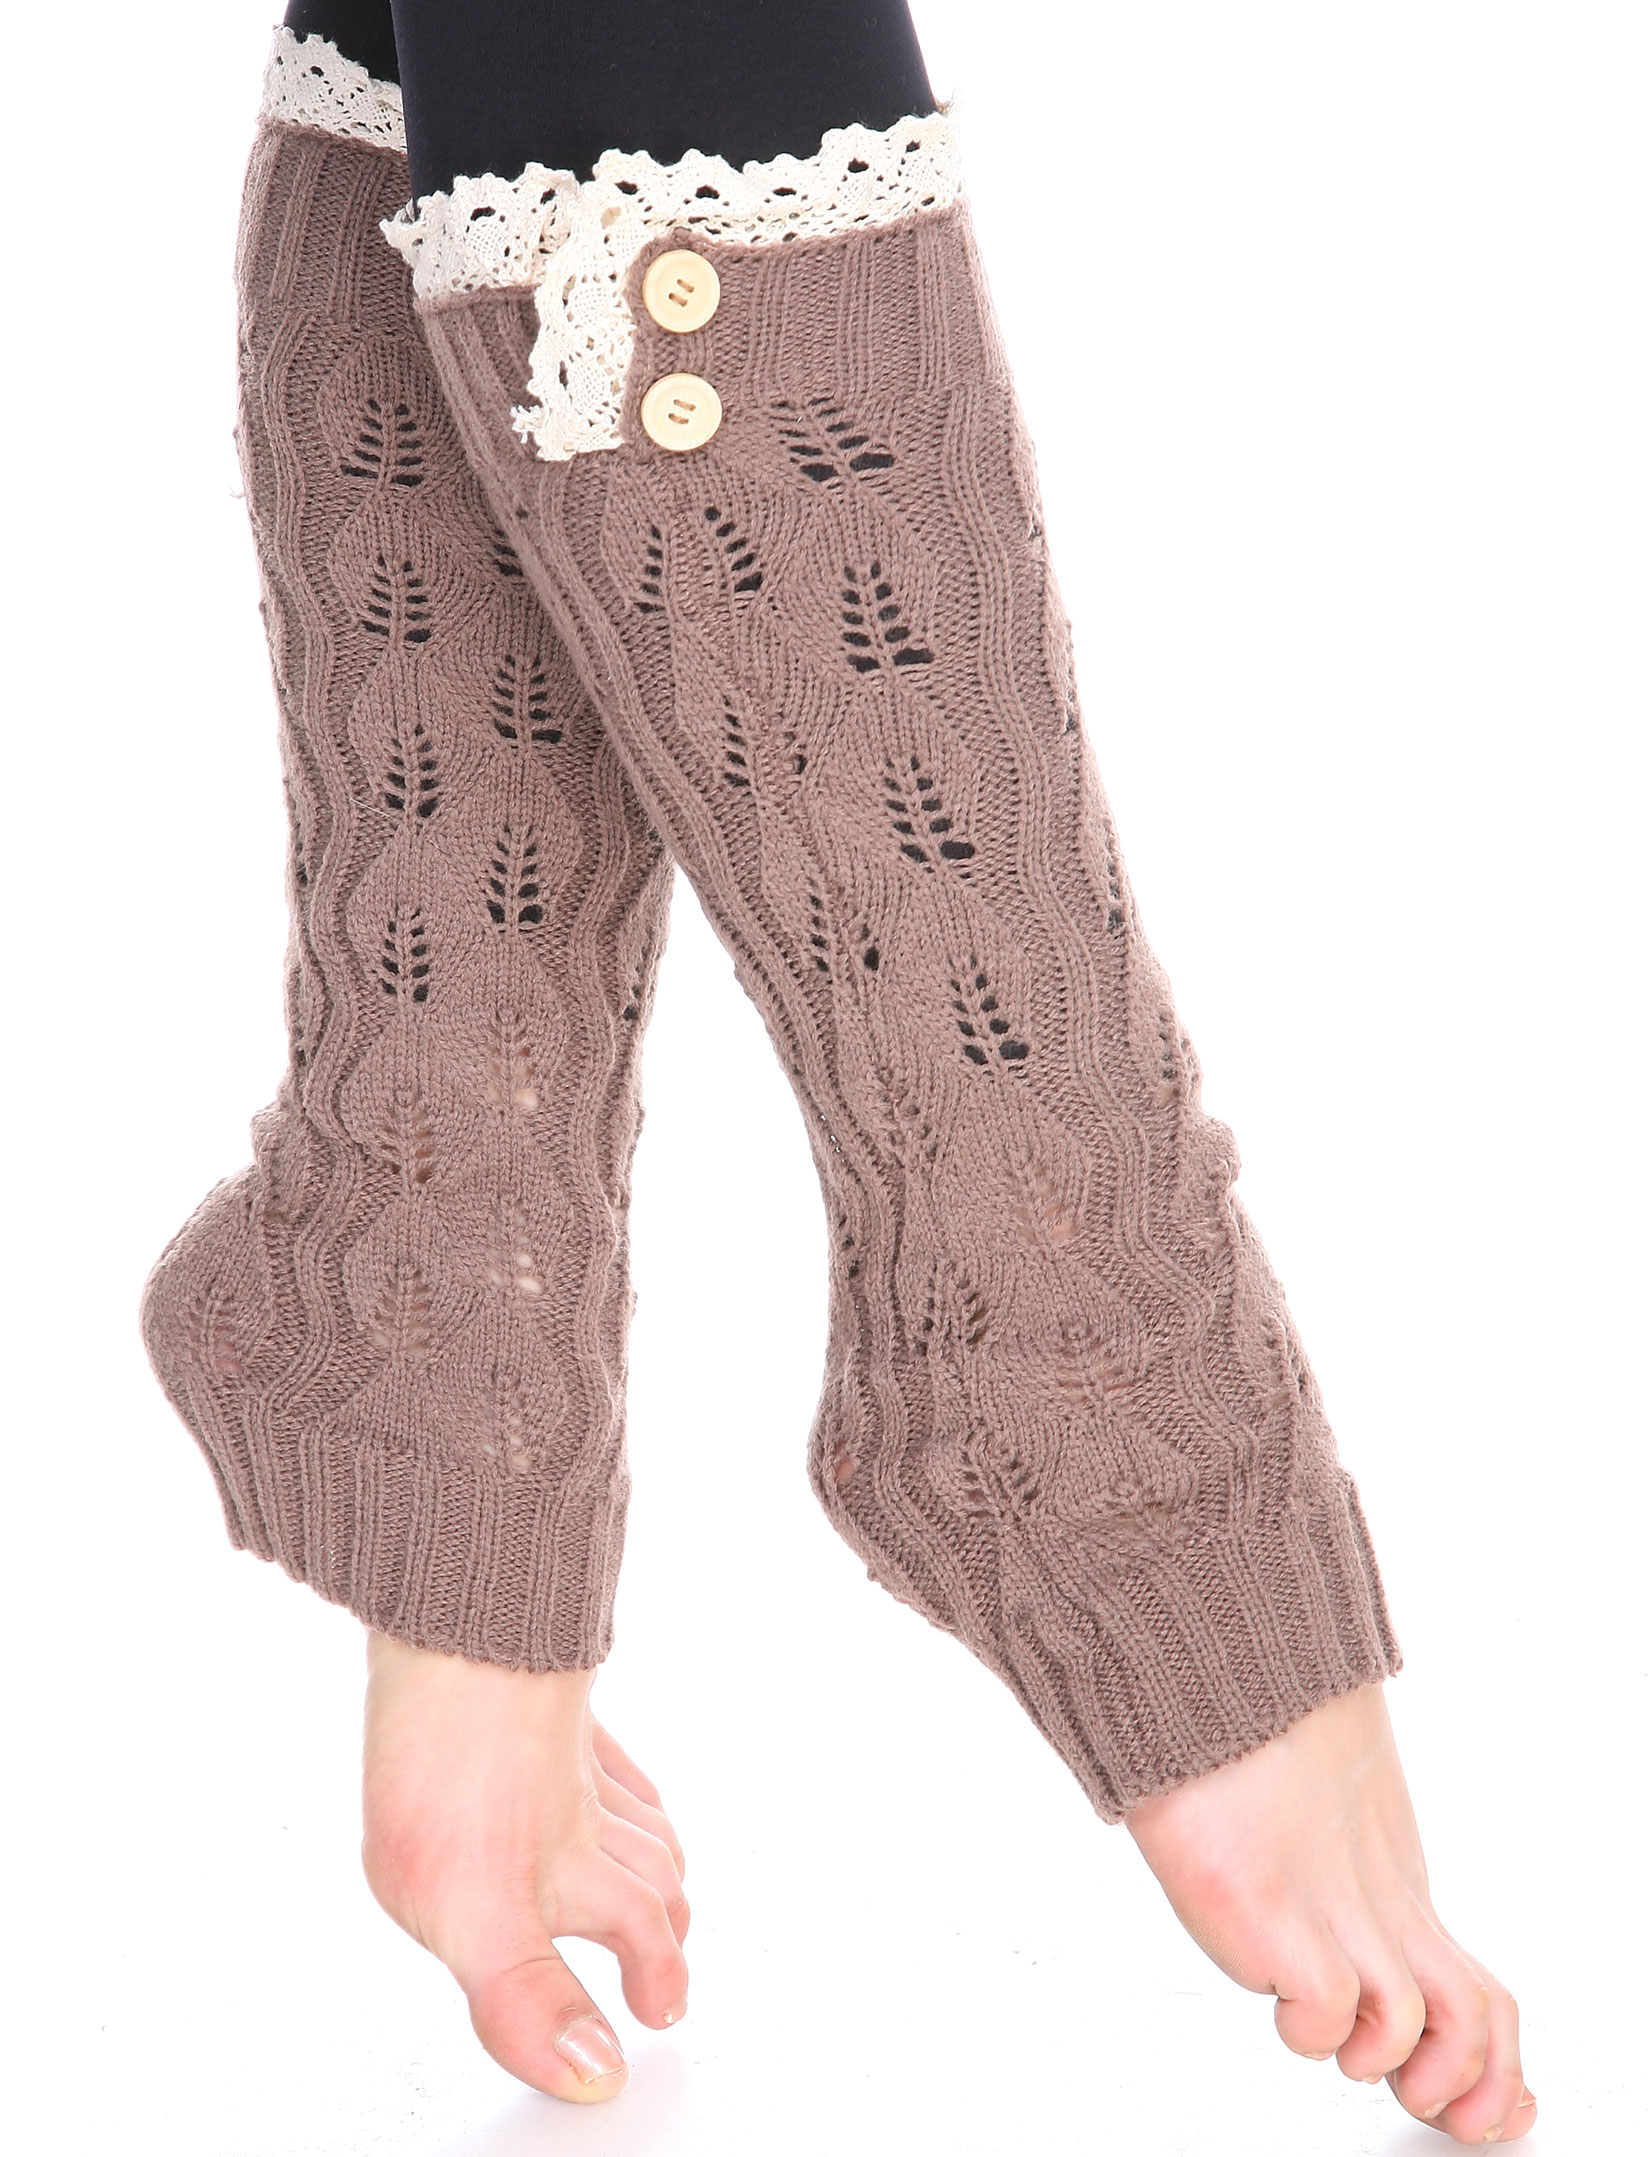 wholesale C Leaf Leg Warmers with Button & Lace 264x105